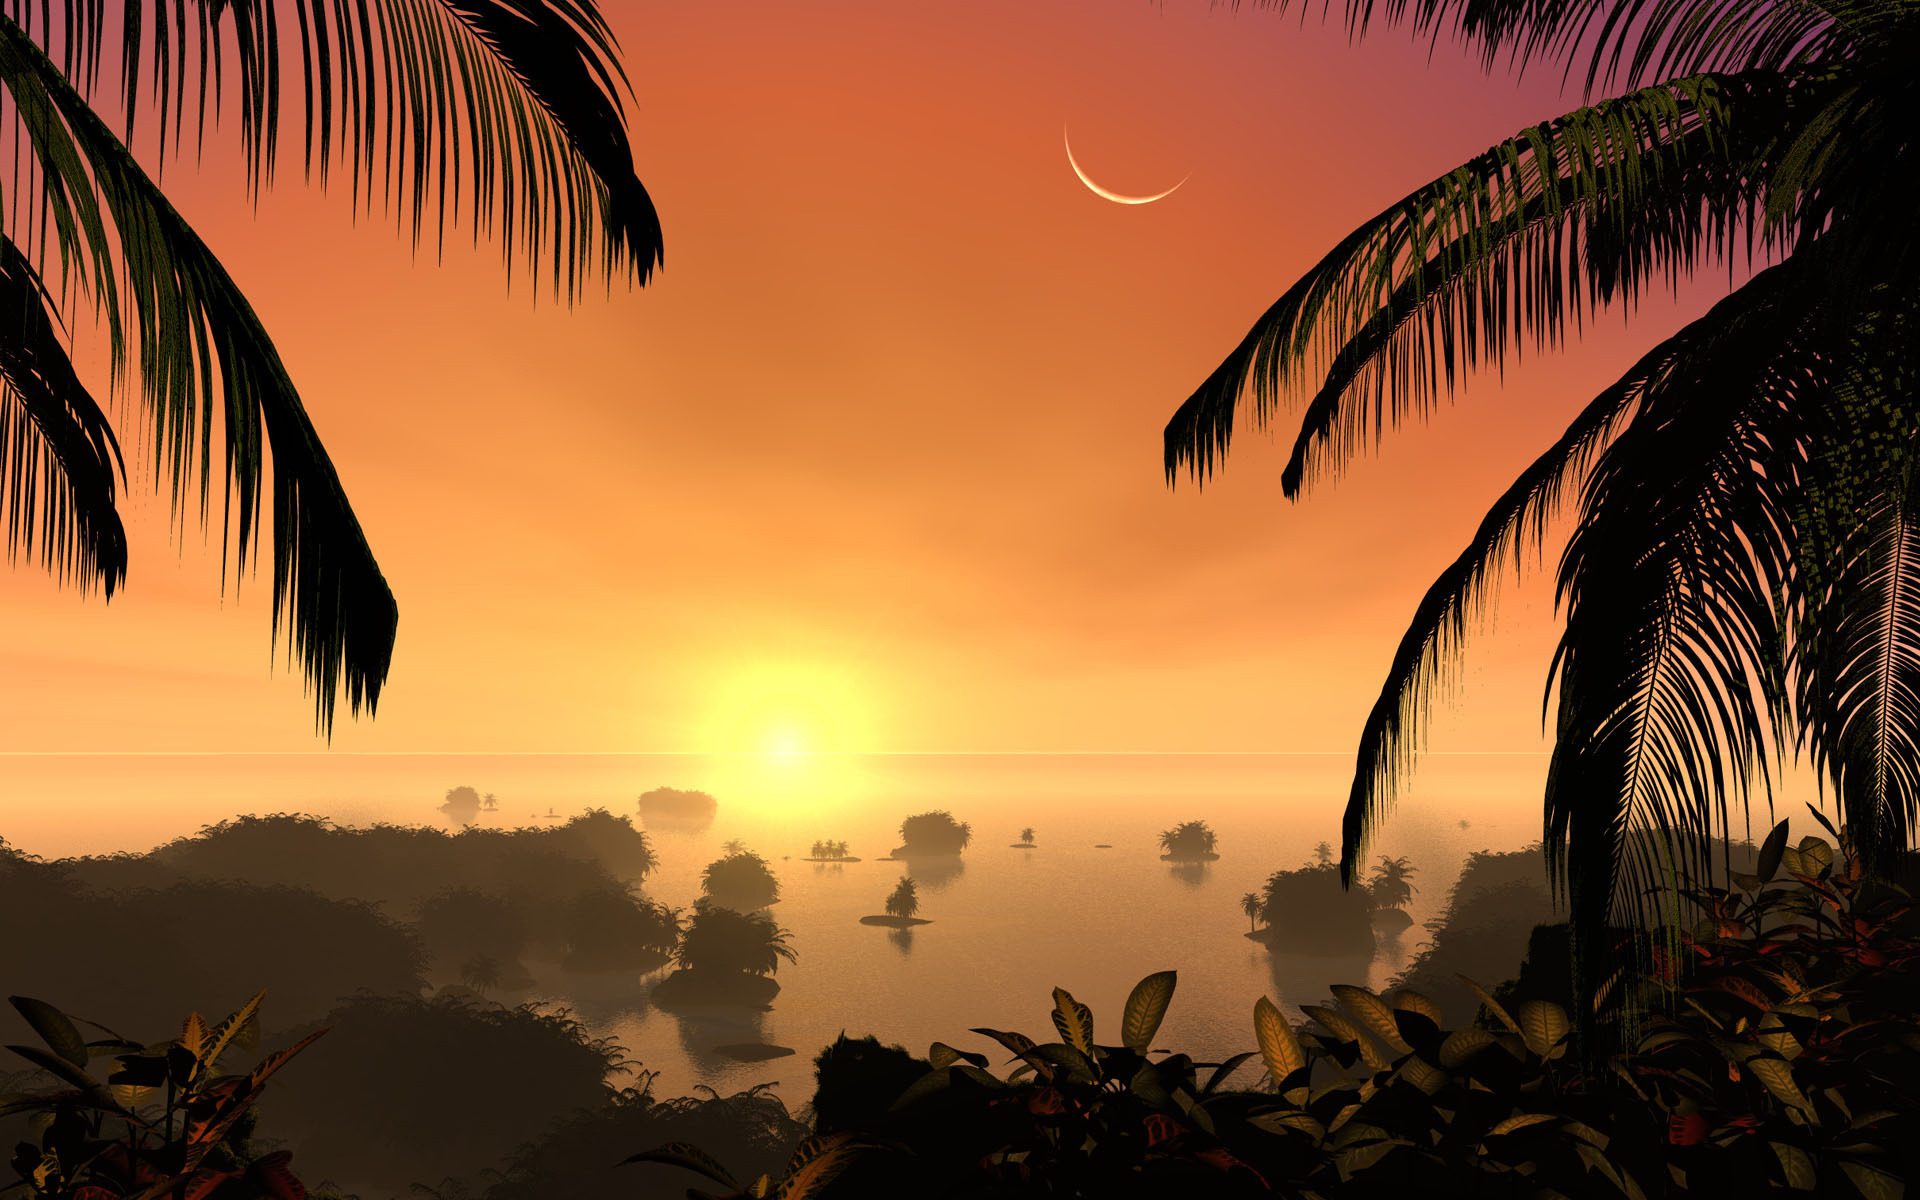 Sunset on a tropical island wallpaper 7206 1920x1200